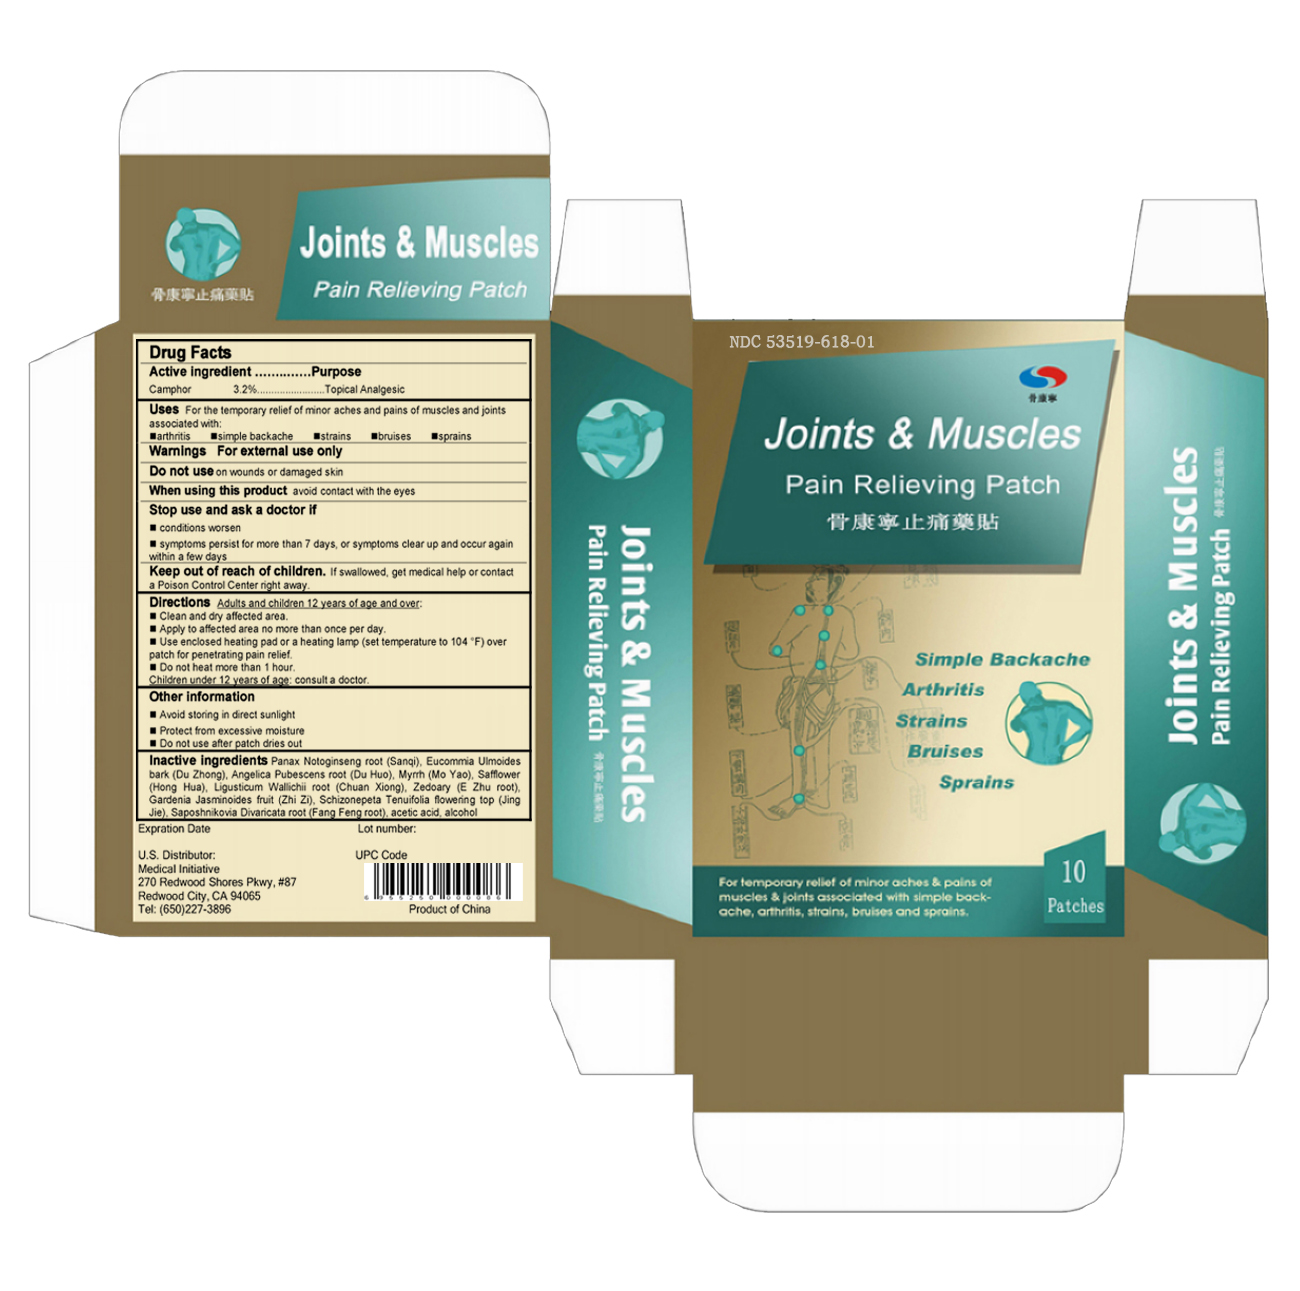 Joints And Muscles Pain Relieving (Camphor (Natural)) Patch [Chongqing Yilin Science And Technology Co., Ltd.]